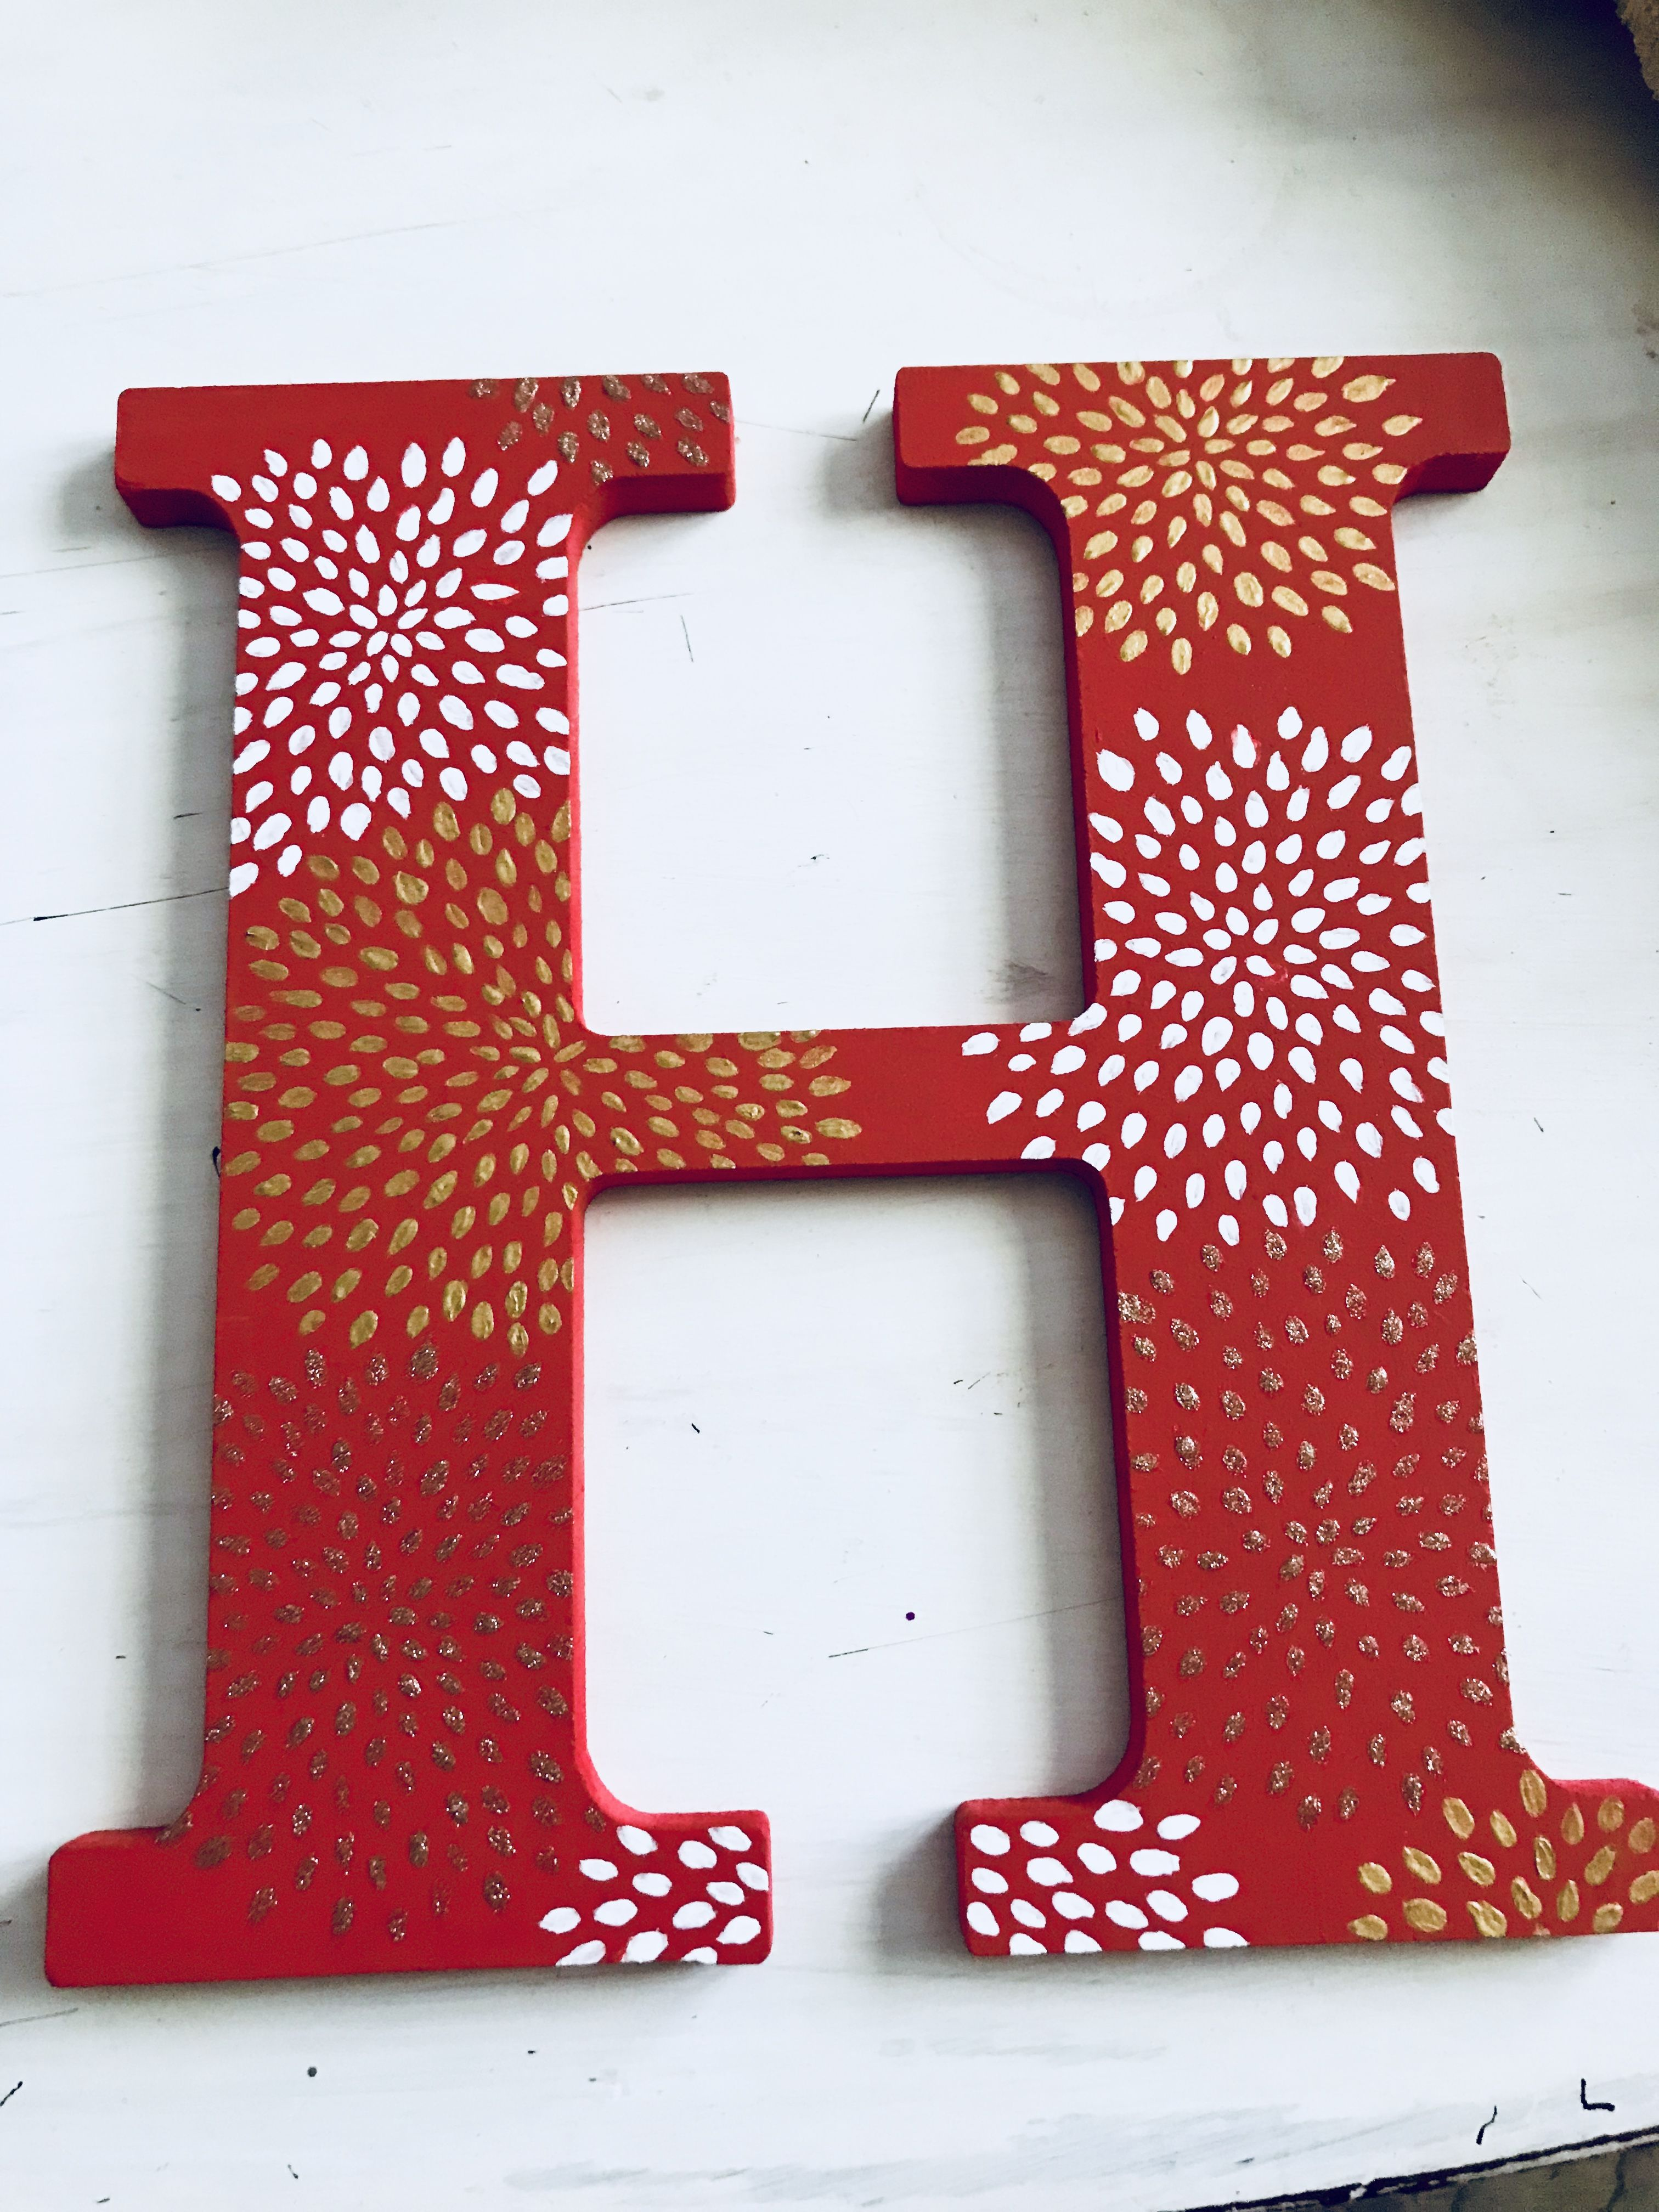 27+ Wooden letter h wall decor ideas in 2021